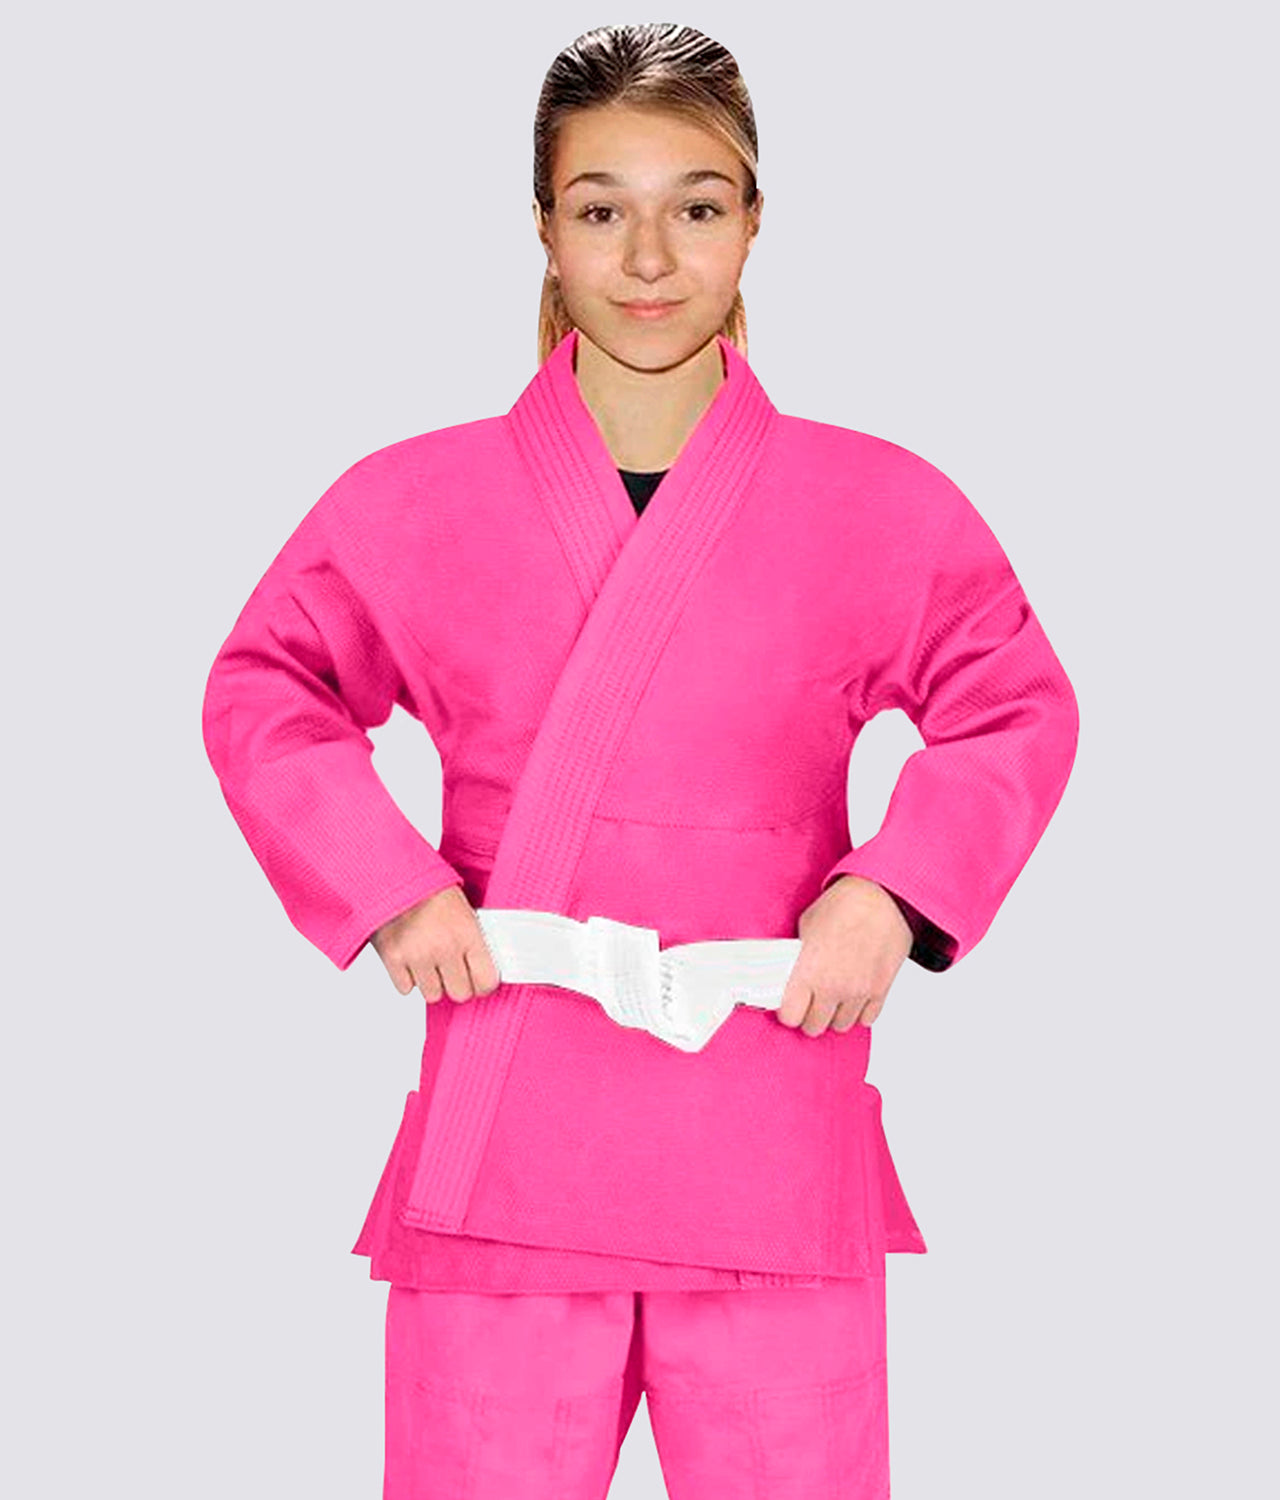 Elite Sports Essential Lightweight Preshrunk High-Quality Cotton Pink Kids Brazilian Jiu Jitsu BJJ Gi With Free White Belt